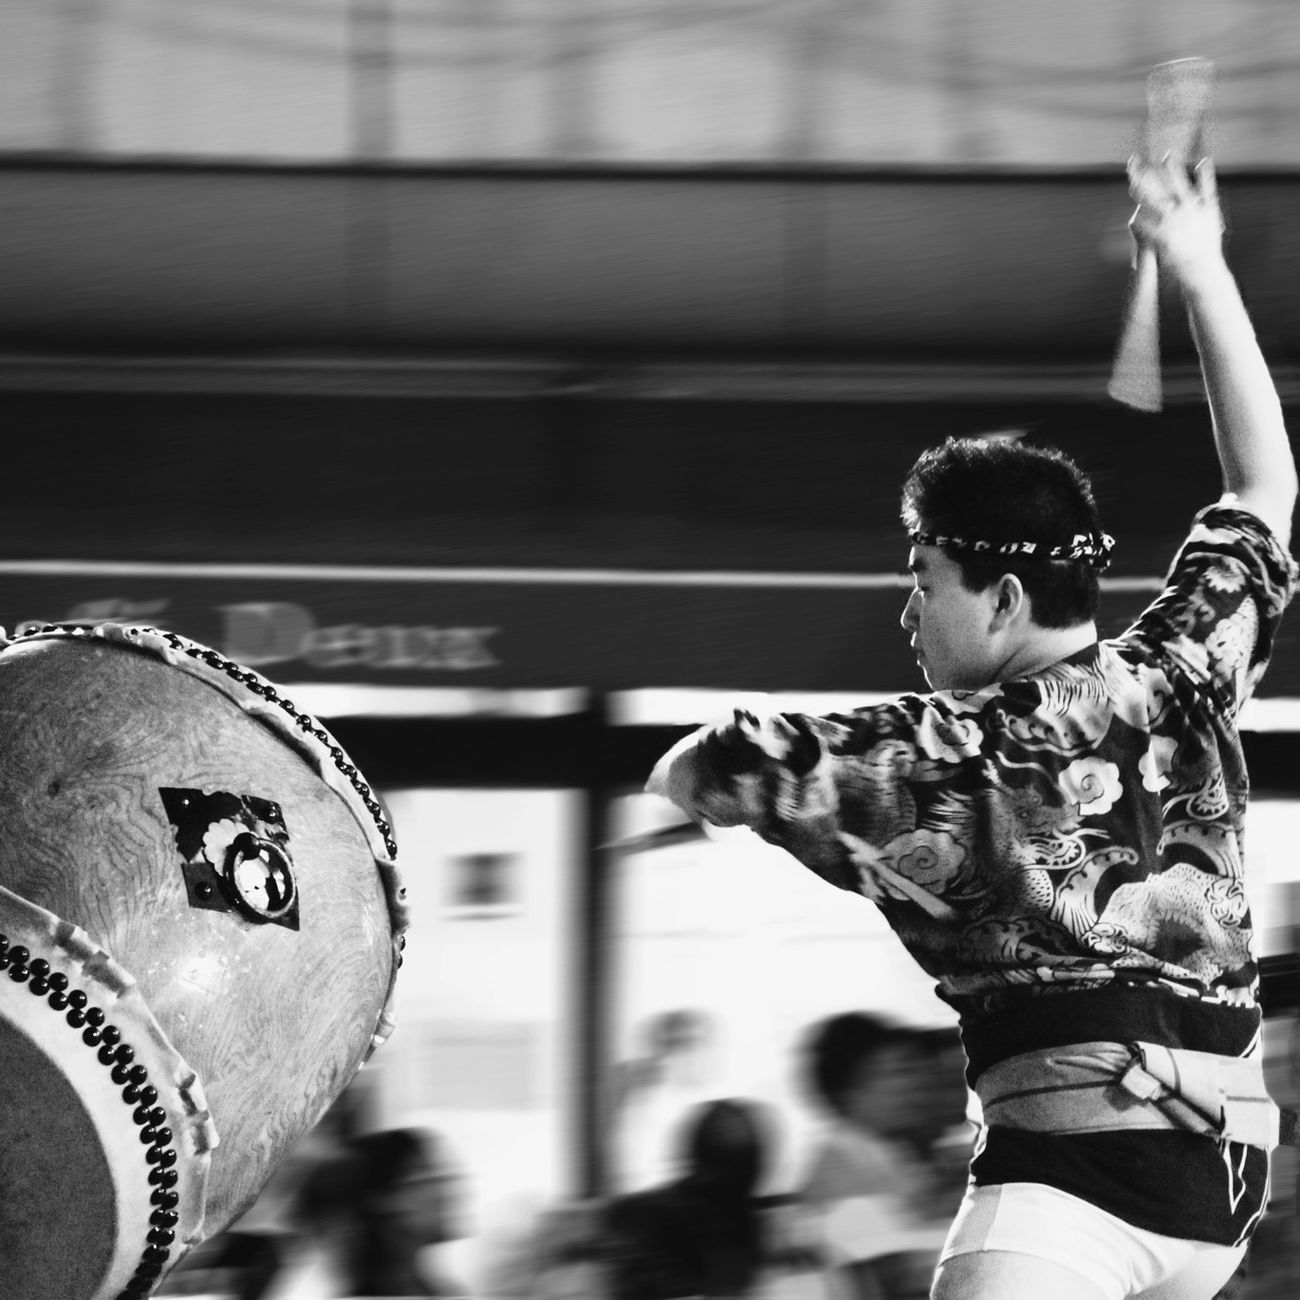 """Blackandwhite Monochrome Introducing Culture Of Japan Which Must Be Left To The Future……  """"未来に残す日本の文化"""" EyeEm Best Shots"""